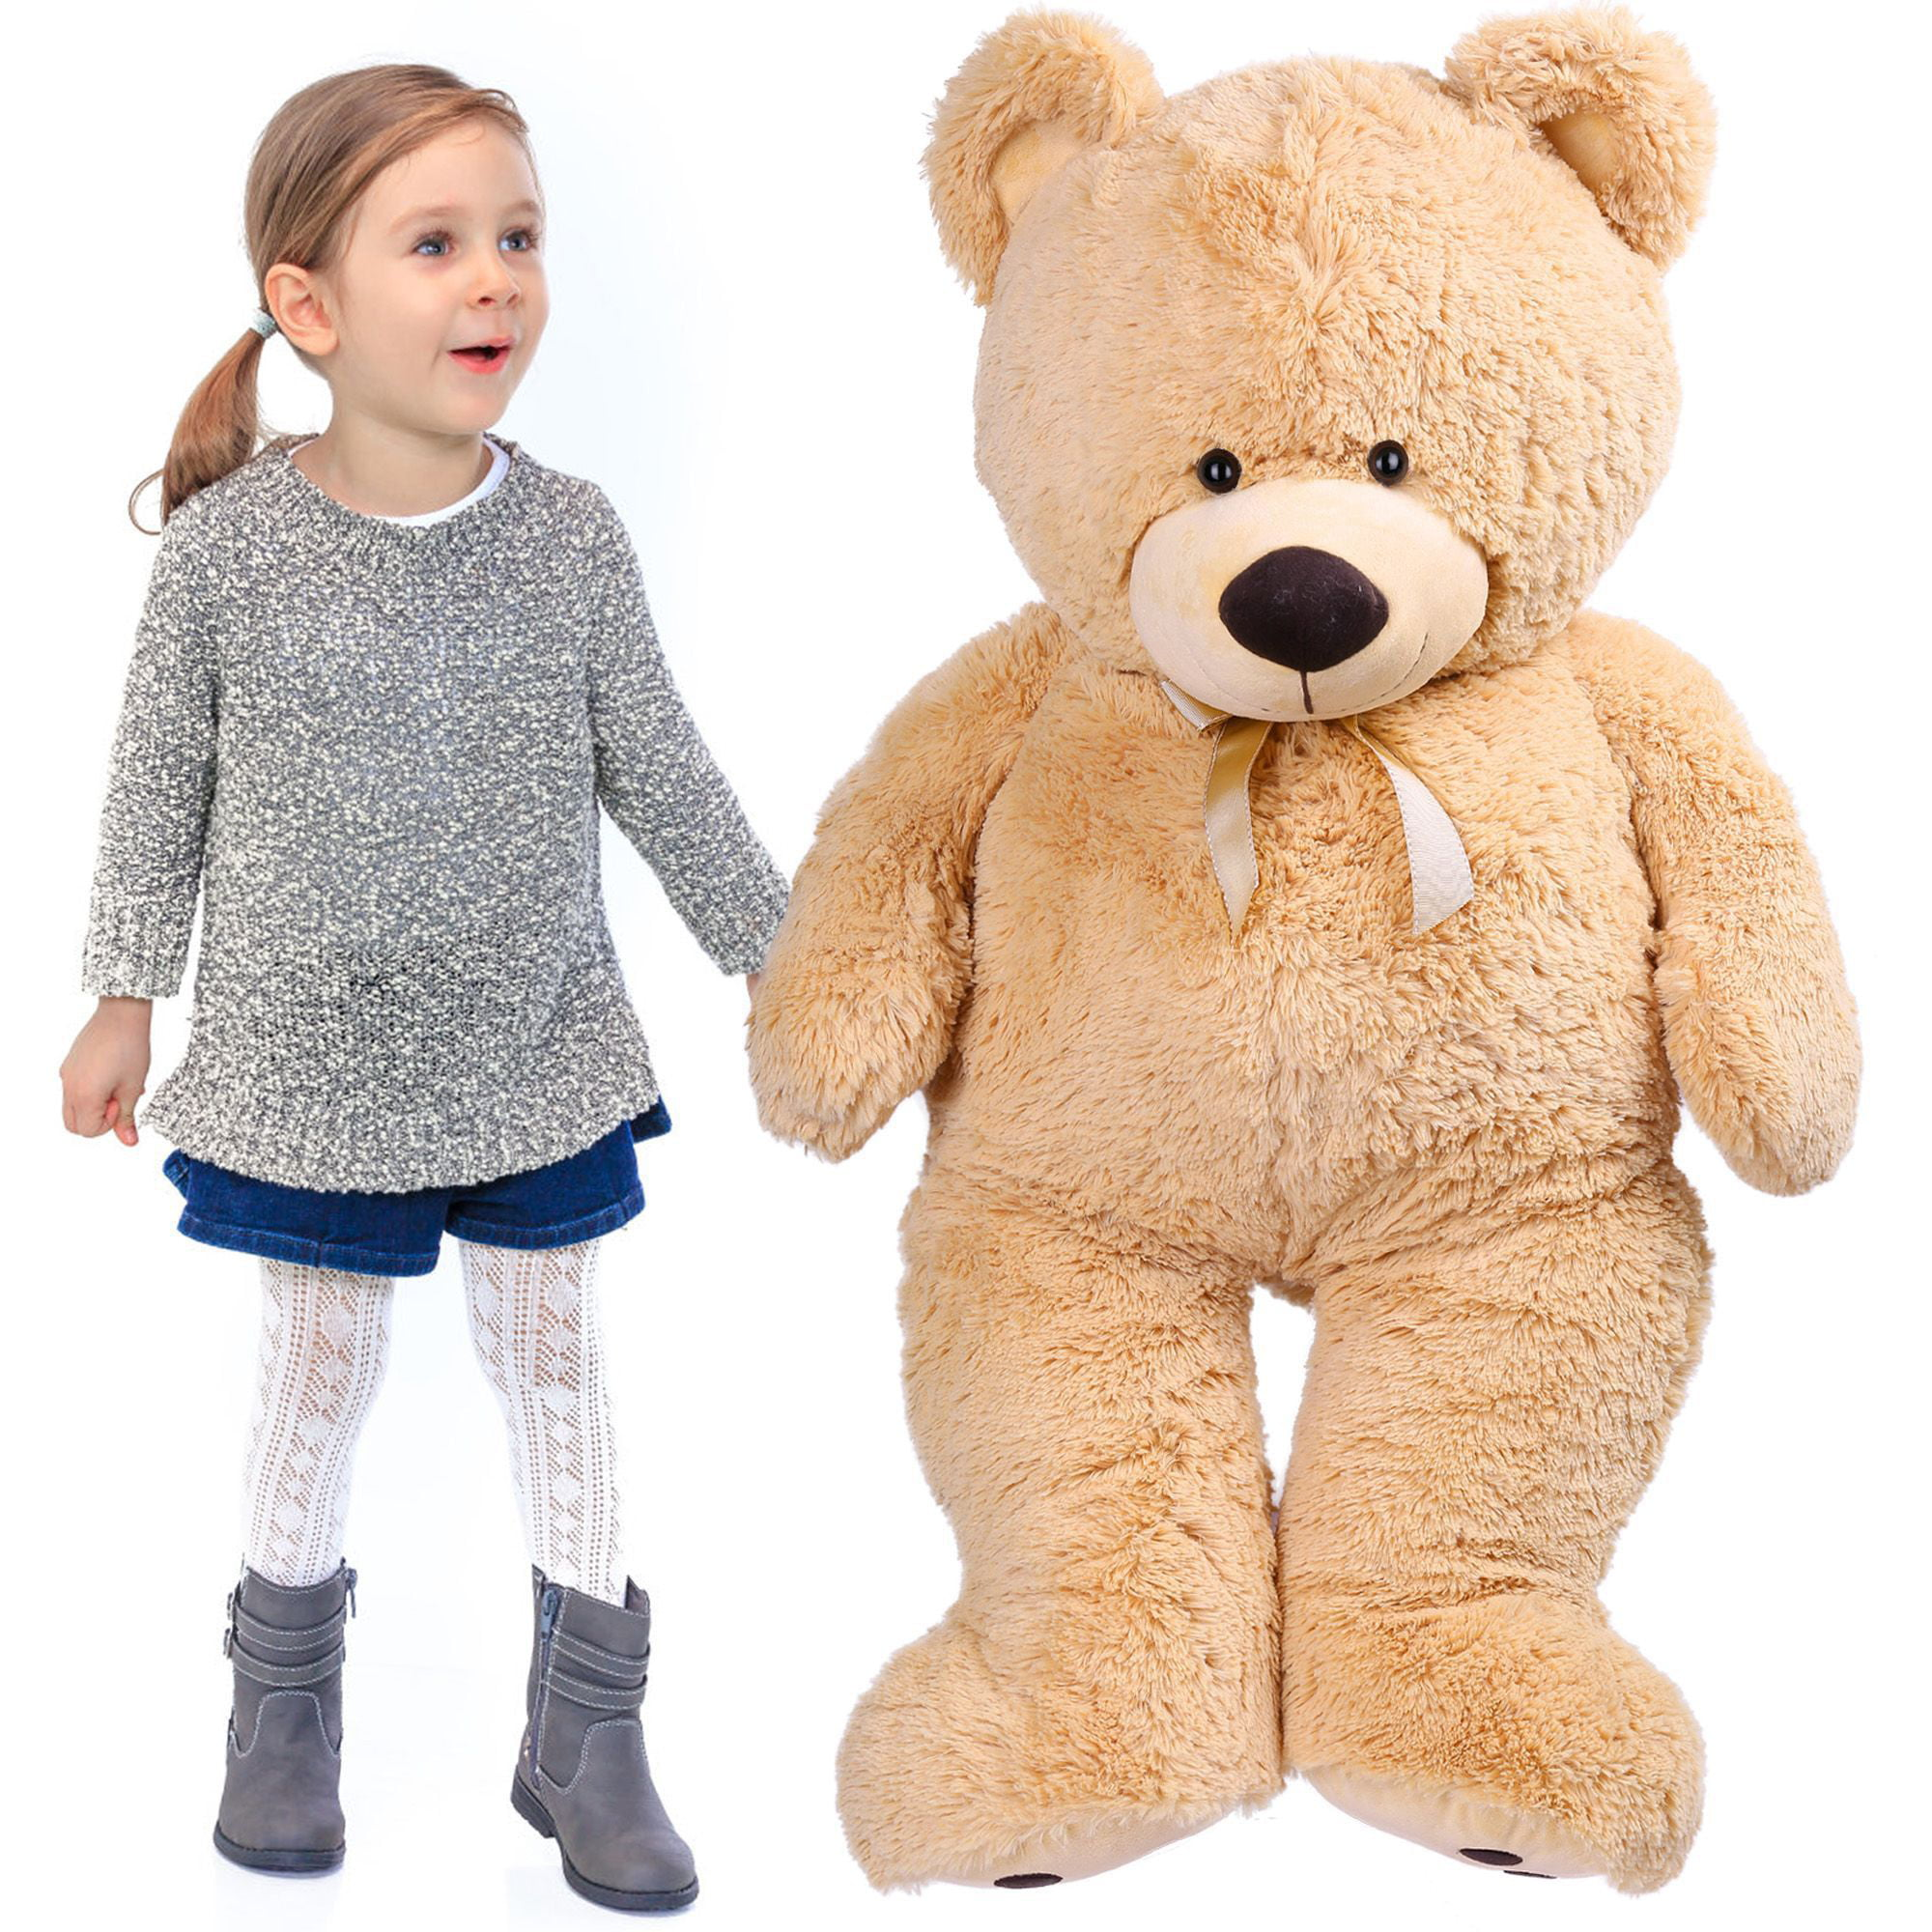 1.4 FT Cute Teddy Bear, Soft Small Stuffed Animal Plush Toy, Birthday Gifts for Kids, Beige by LotFancy